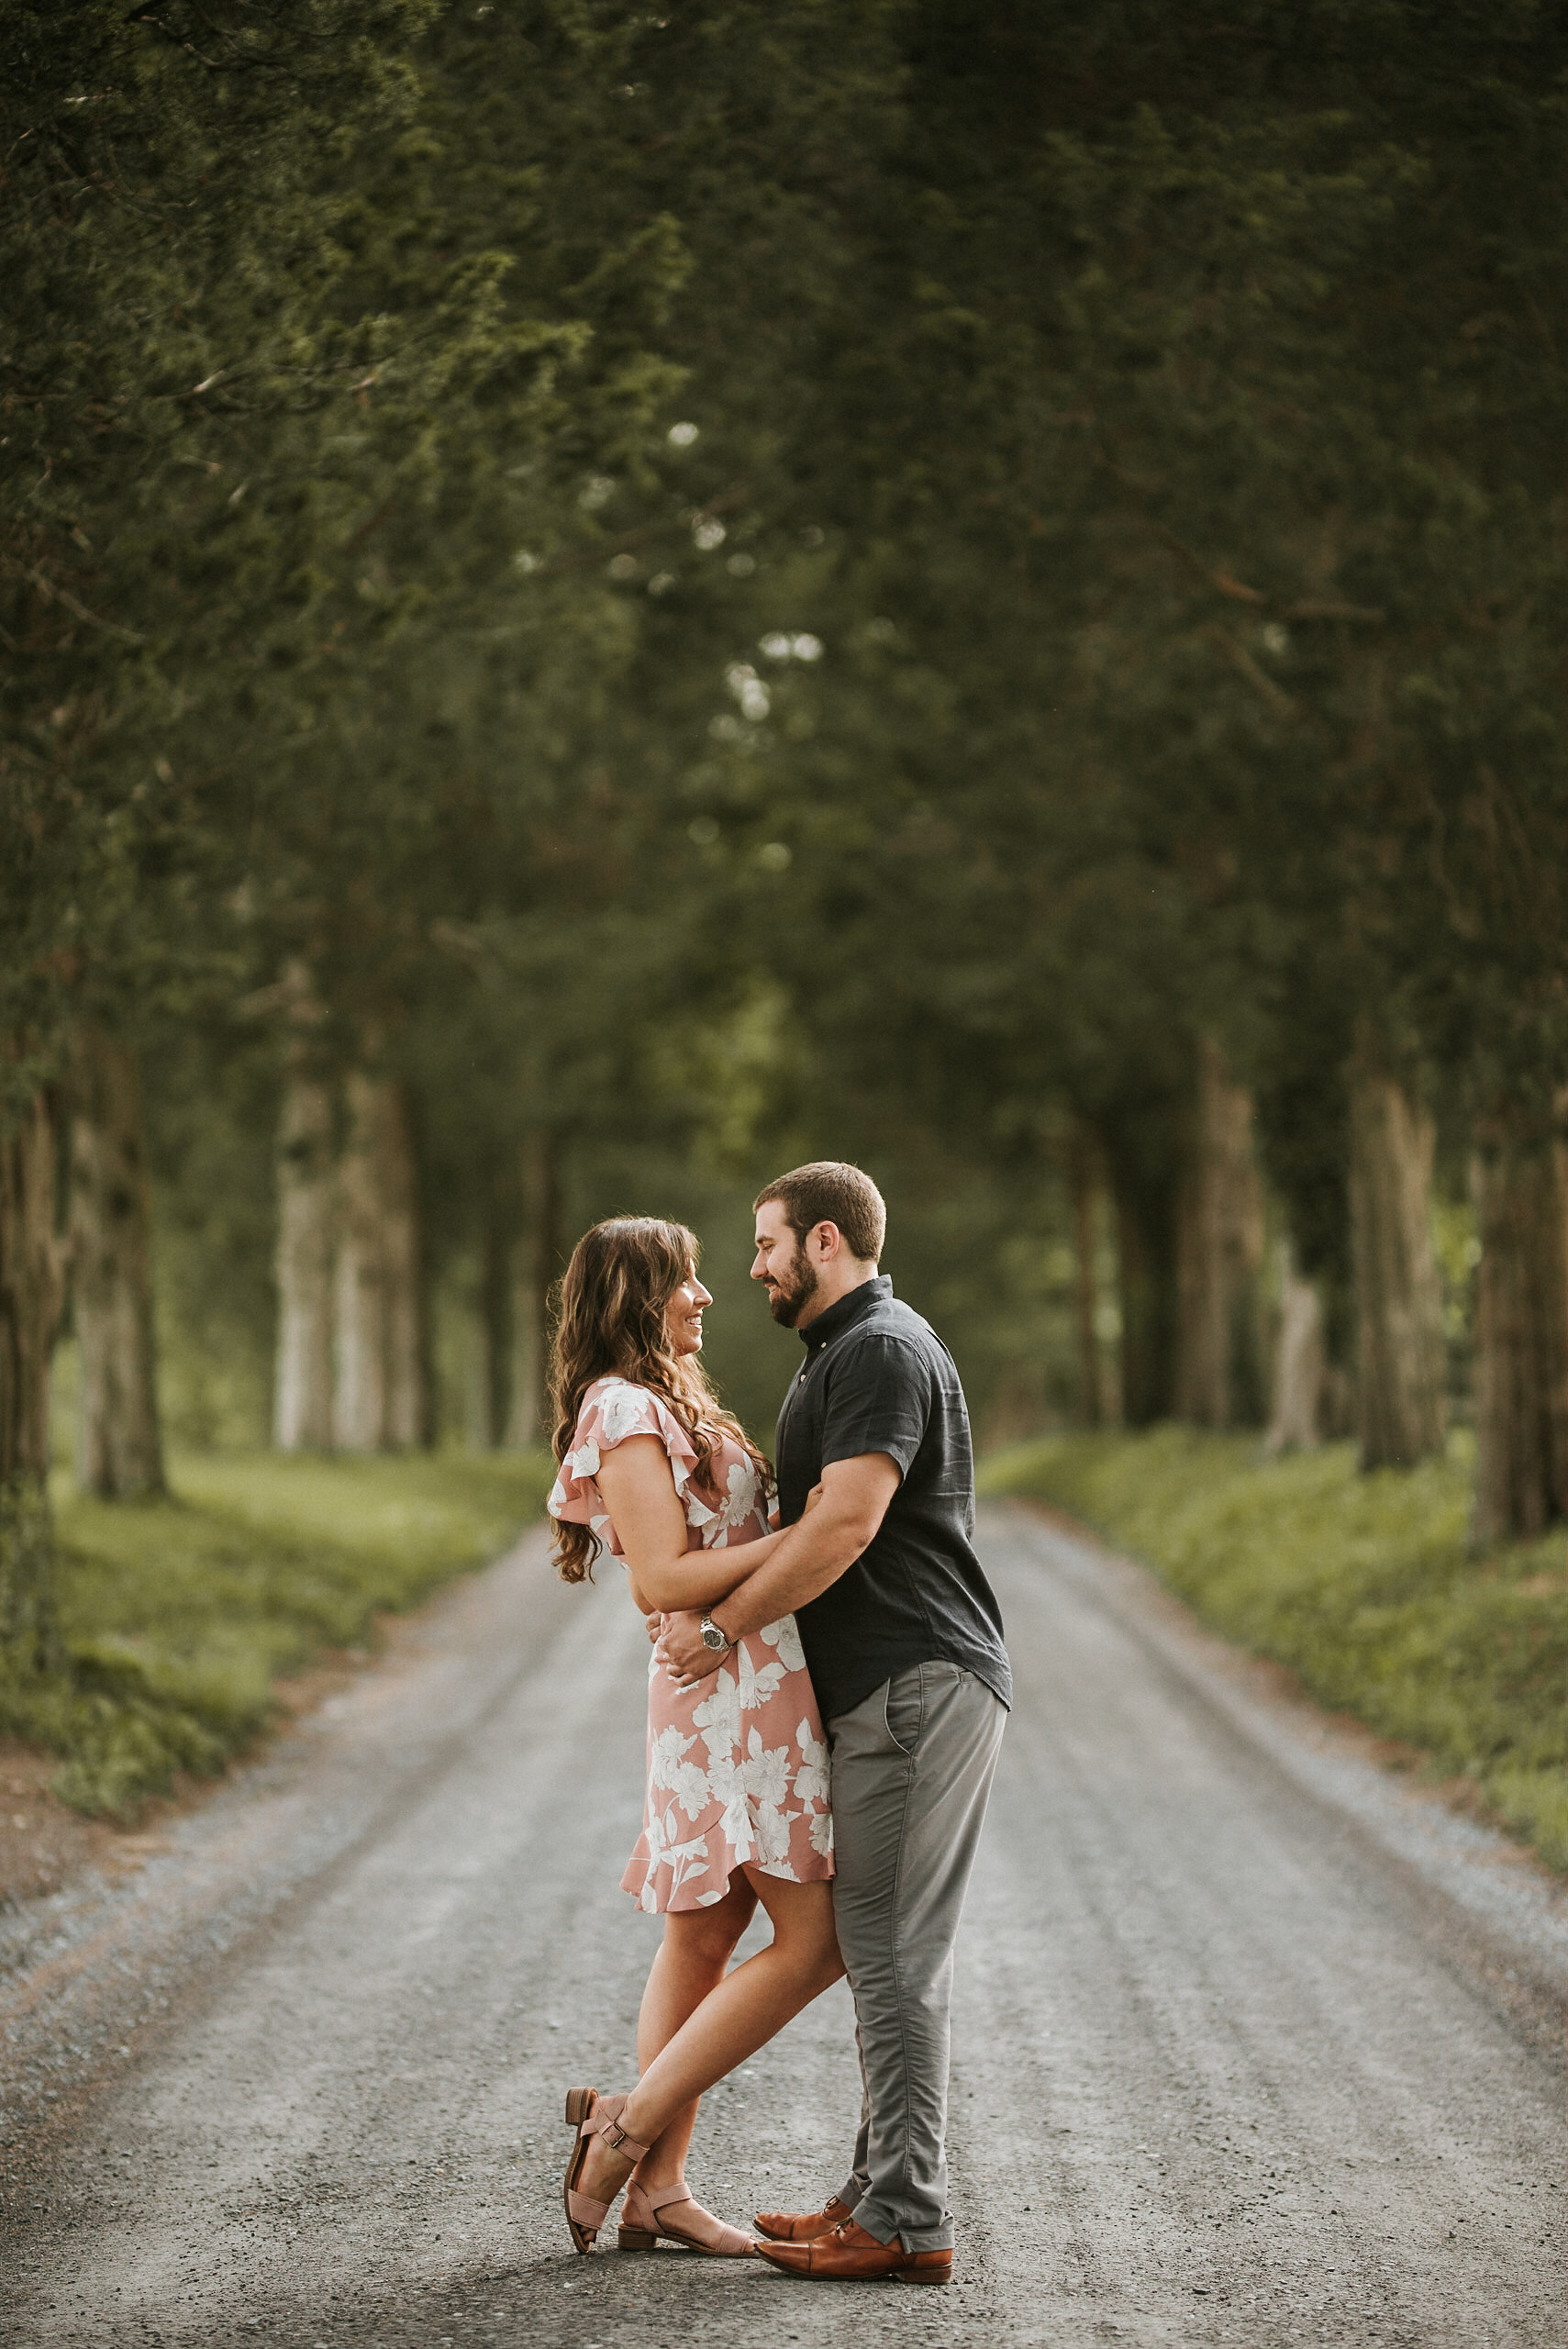 Engagement photo on gravel road